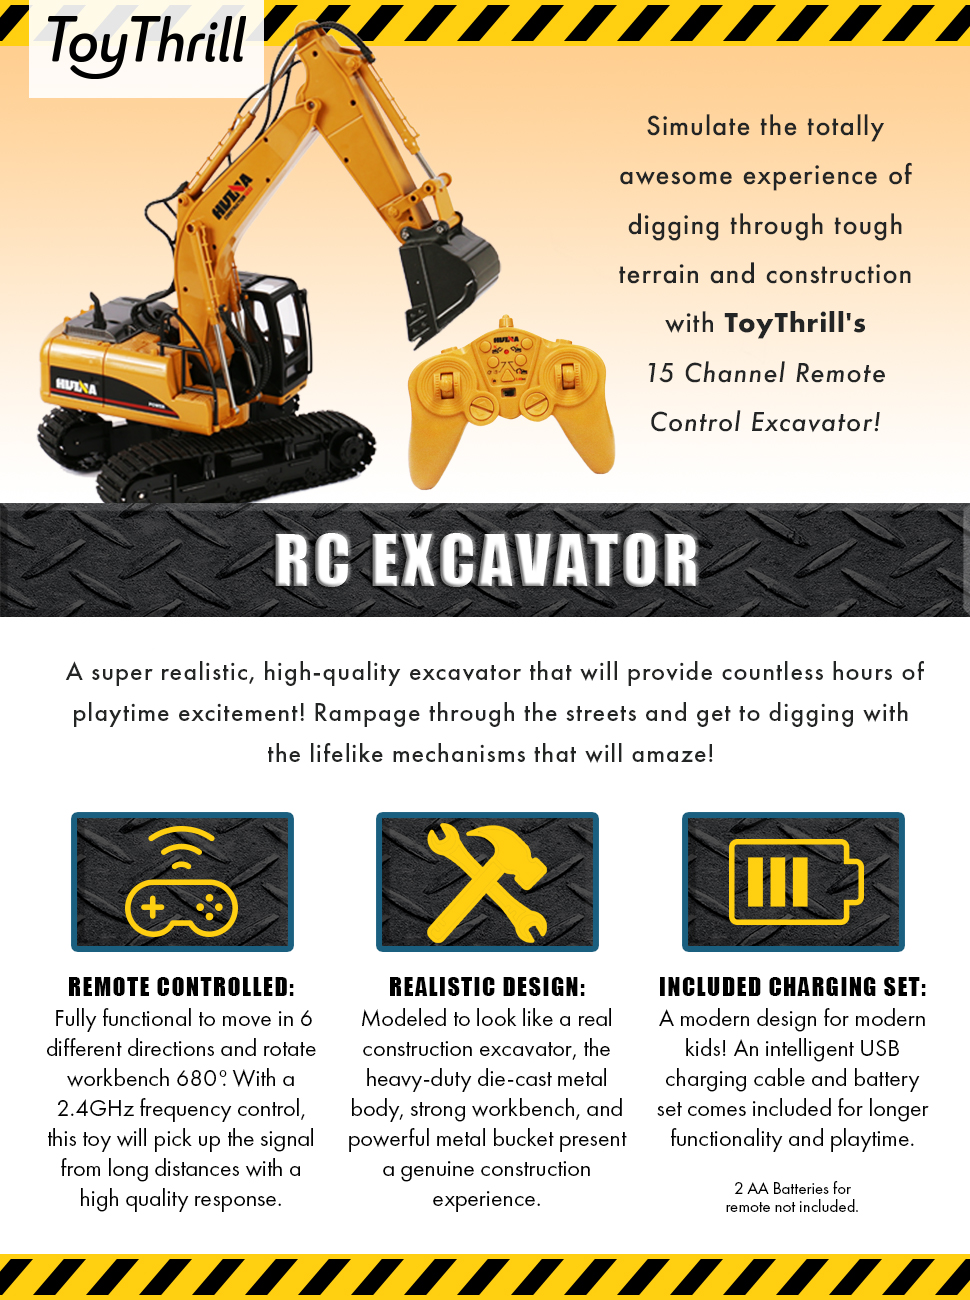 Toythrill Remote Control Excavator Fully Functional 15 And Are More Than A Basic 4 Or 5 Channel Rc Transmitter Simulate The Totally Awesome Experience Of Digging Through Tough Terrain Construction With Toythrills